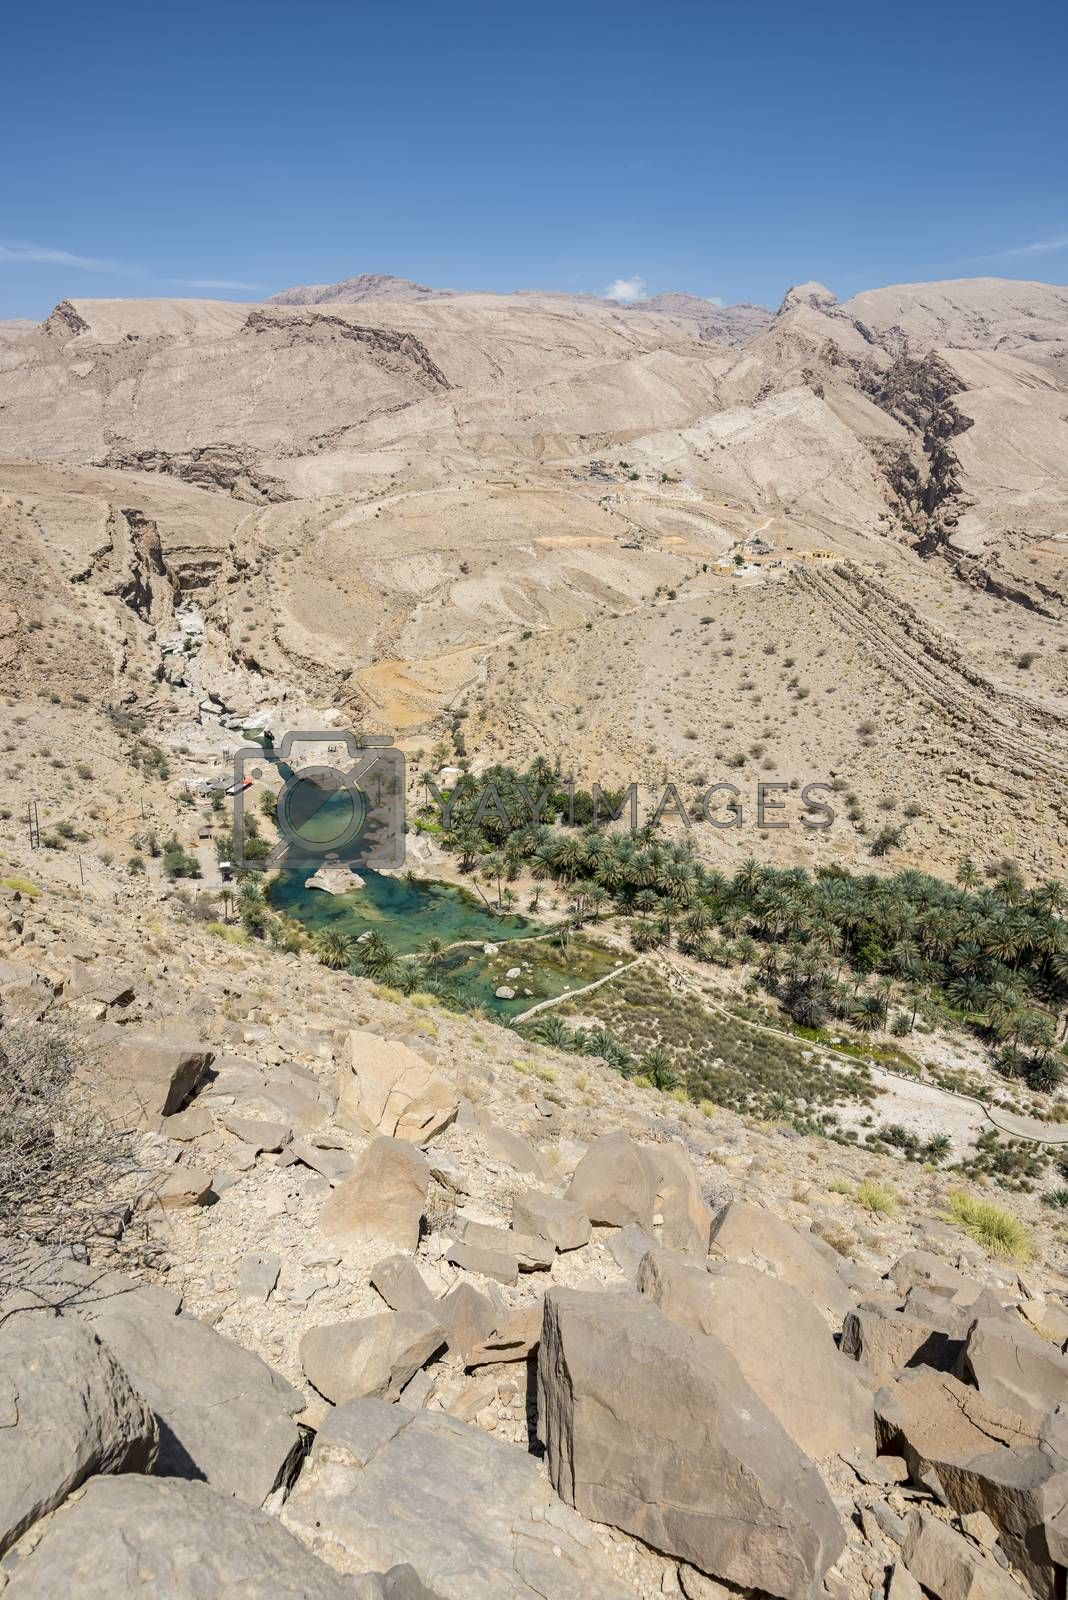 Top view of Wadi Bani Khalid, Sultanate of Oman. We can see the main pool and many tourists going and coming in/from the canyon. This is one of the most visited wadi in Oman with easy access. Many travel agencies are stopping by. It is a main destination.